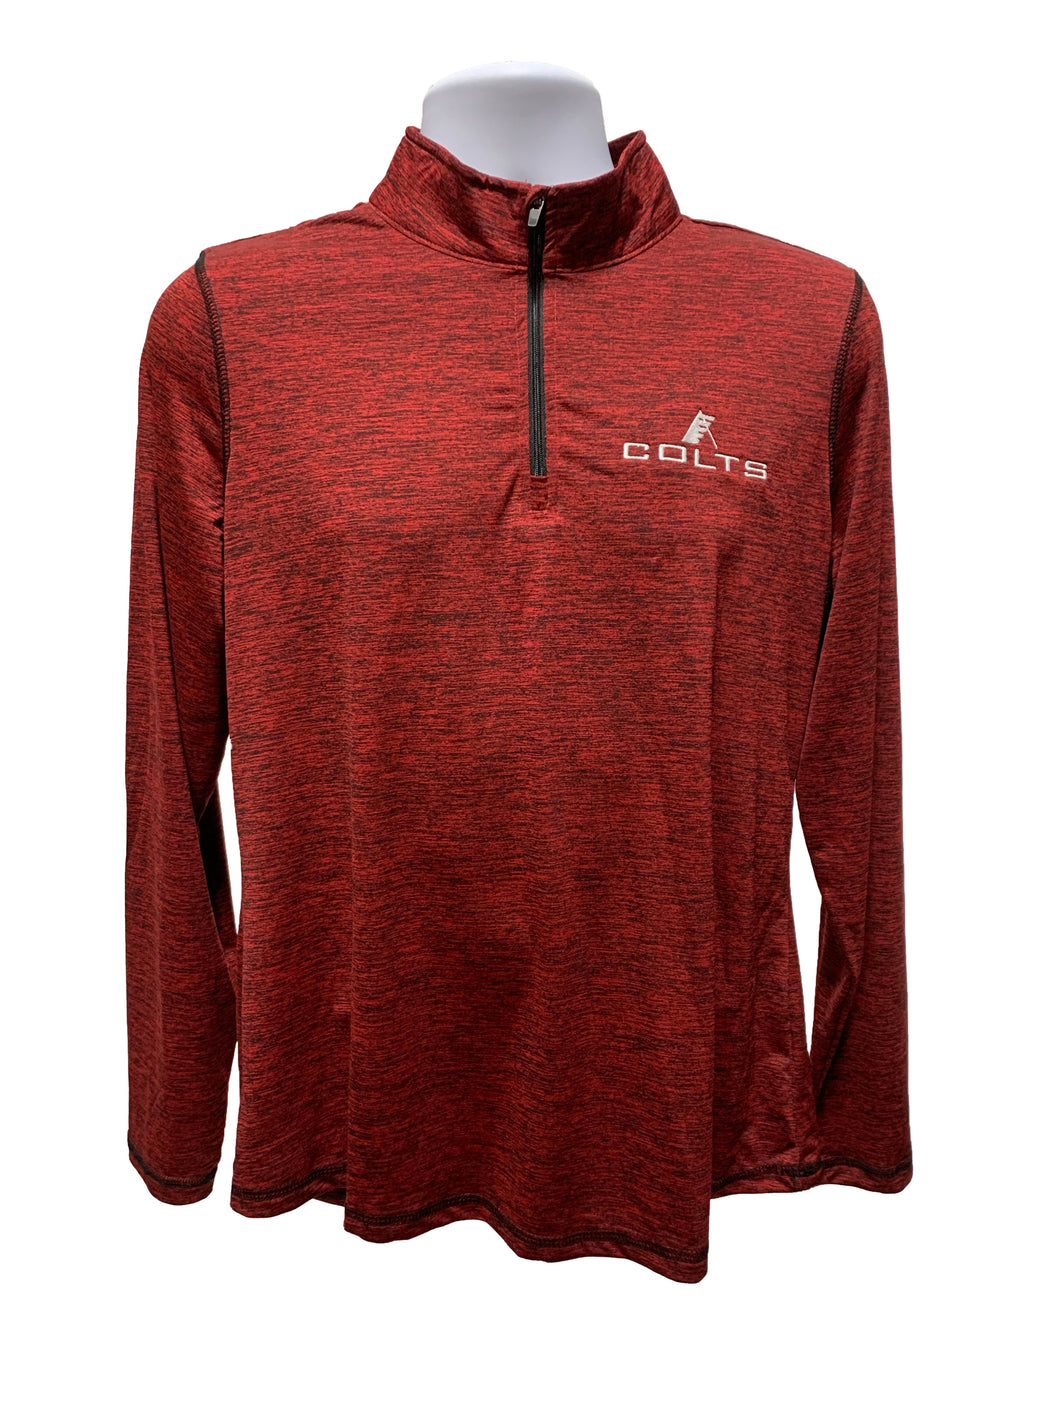 Colts Women's Red Heather 1/4 Zip